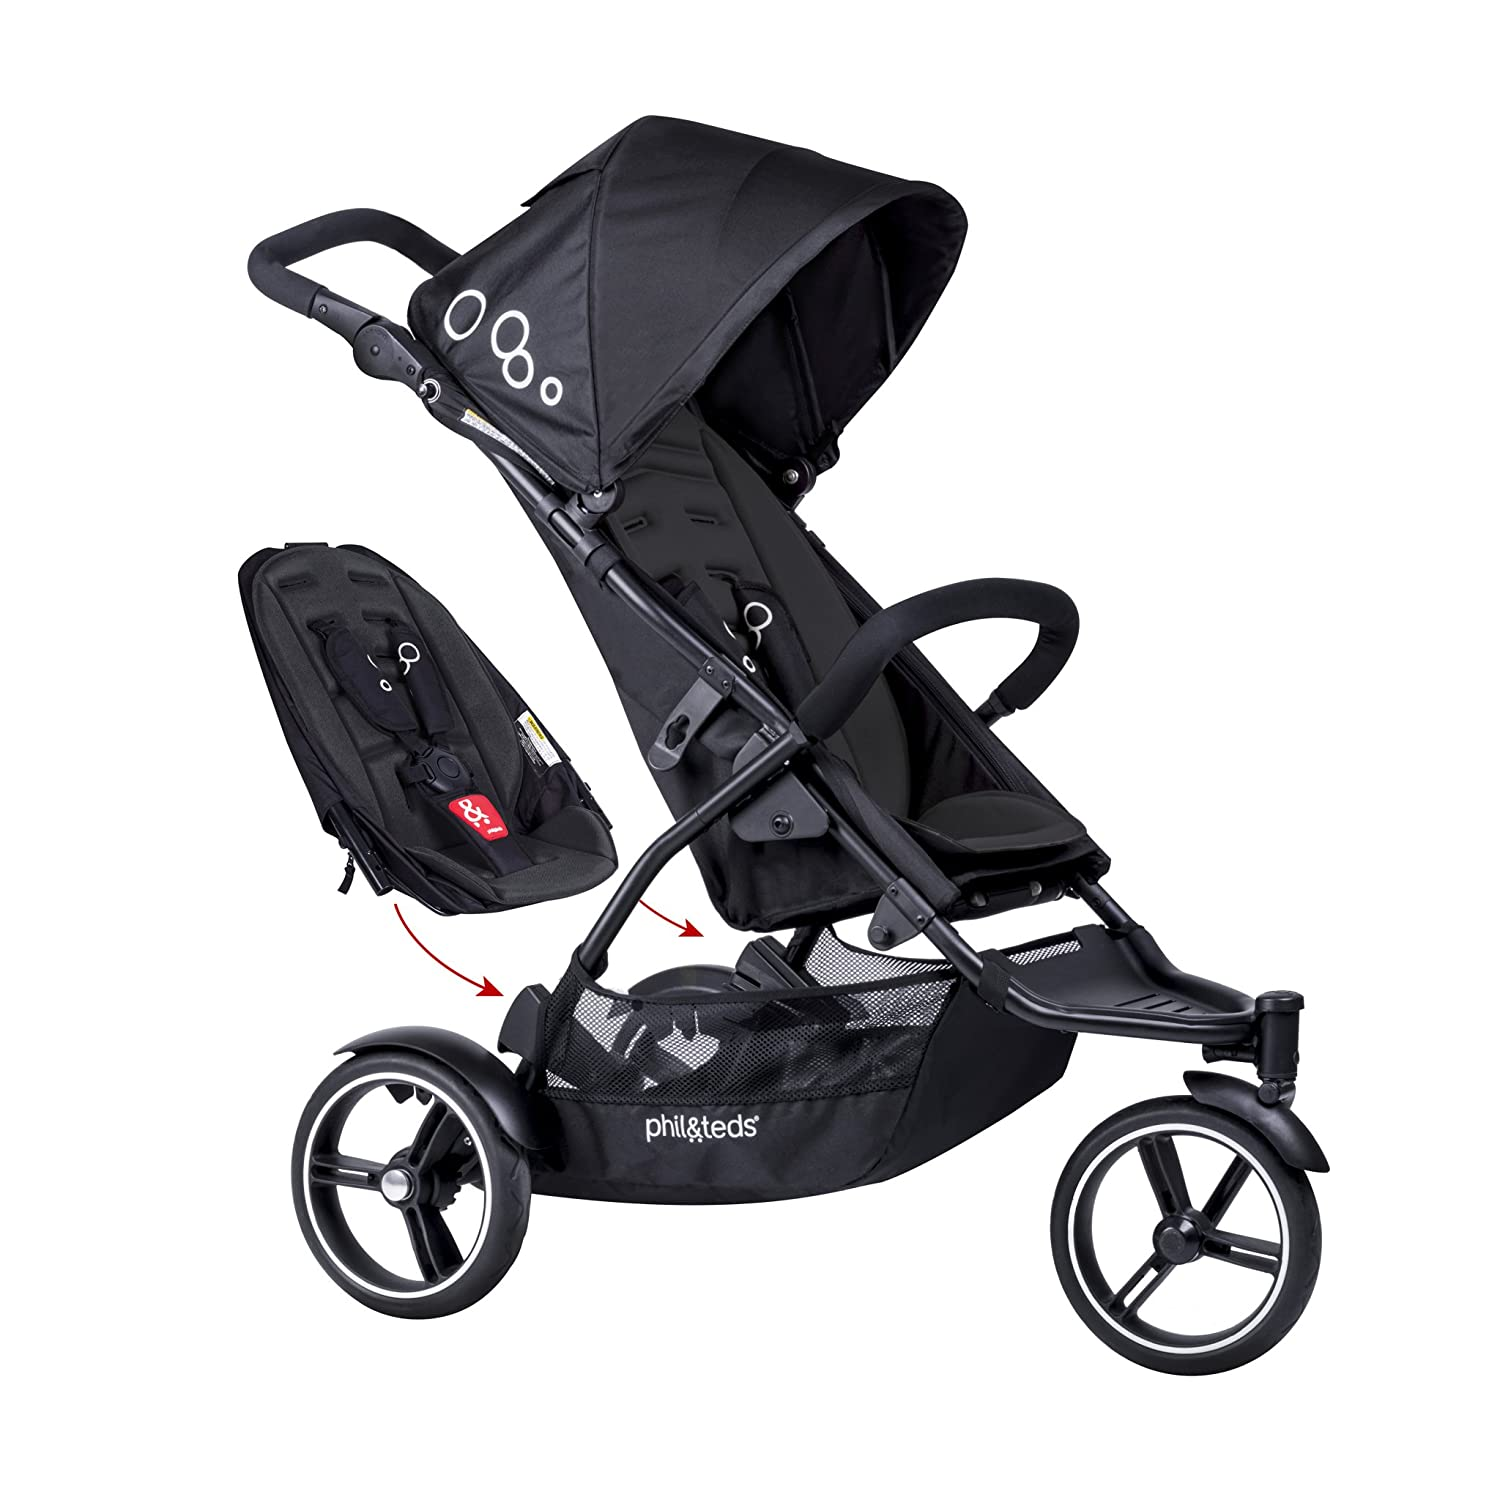 phil teds Dot Compact Inline City Stroller with Double Kit, Black Compact Frame with Full Size Seat Newborn Ready Parent Facing Seat Included Compact, One Hand Fold Puncture Proof Tires